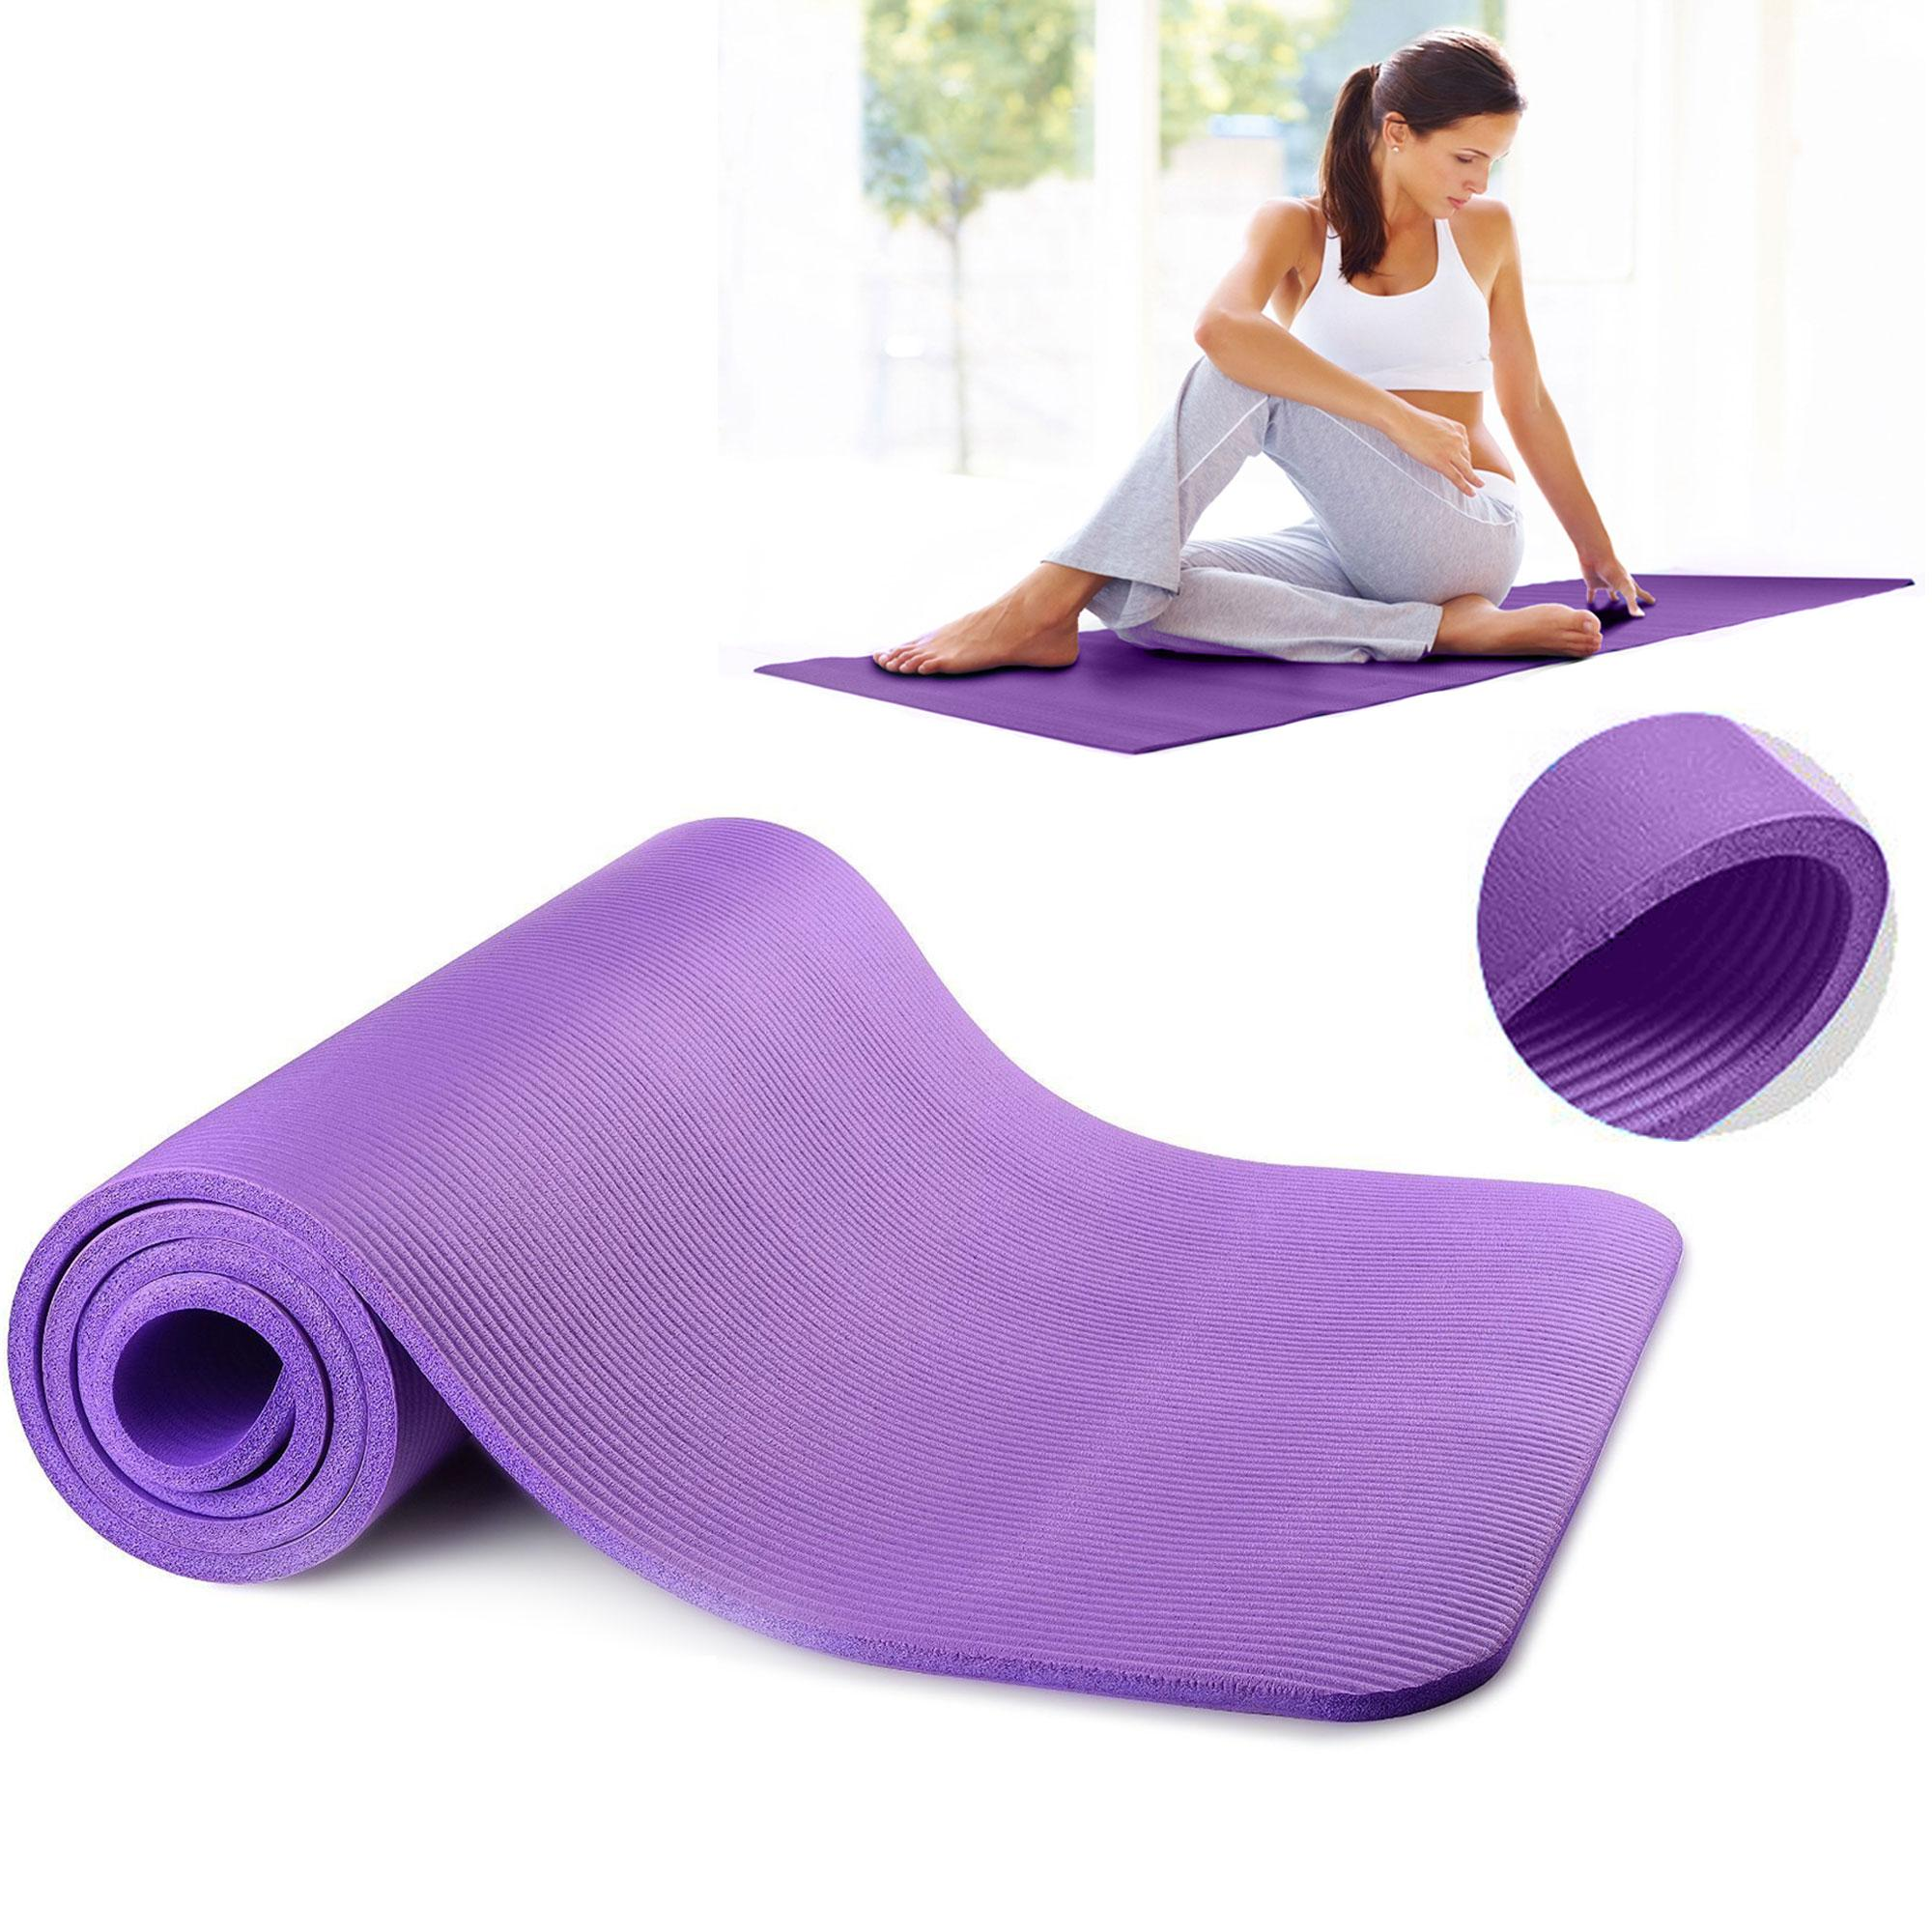 What Is The Purpose Of A Yoga Mat